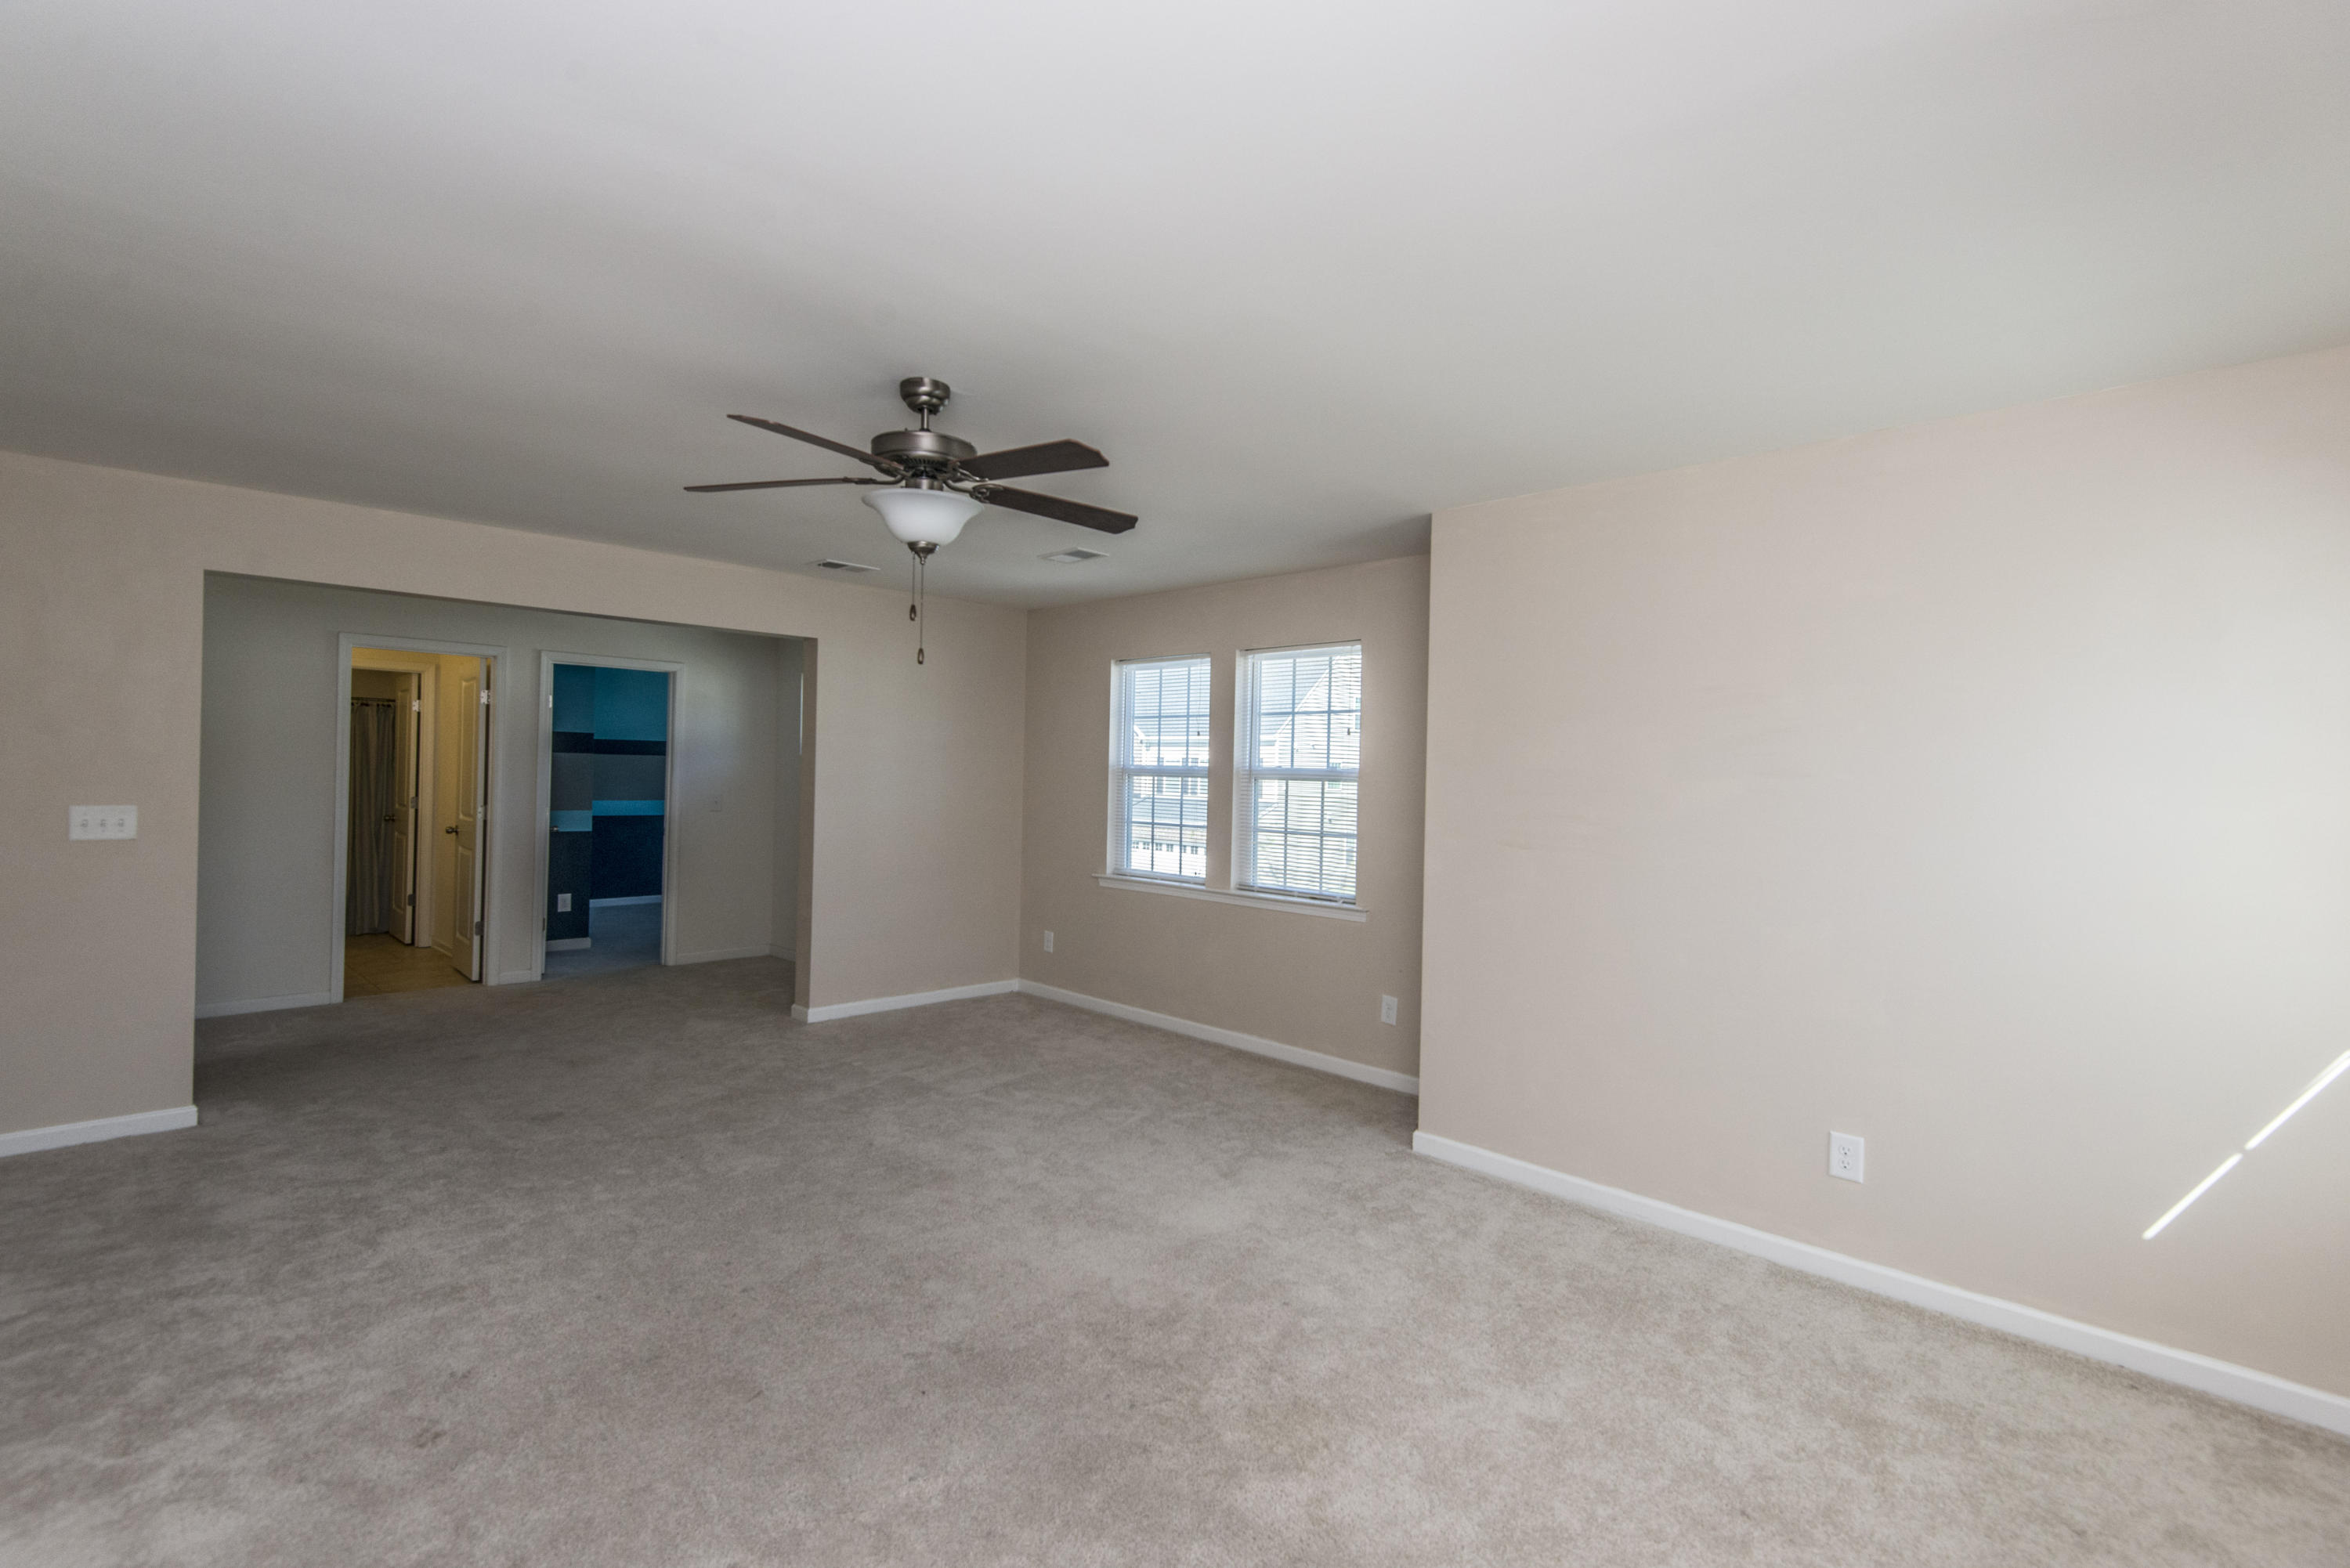 Wentworth Hall Homes For Sale - 216 Wexford, Summerville, SC - 28